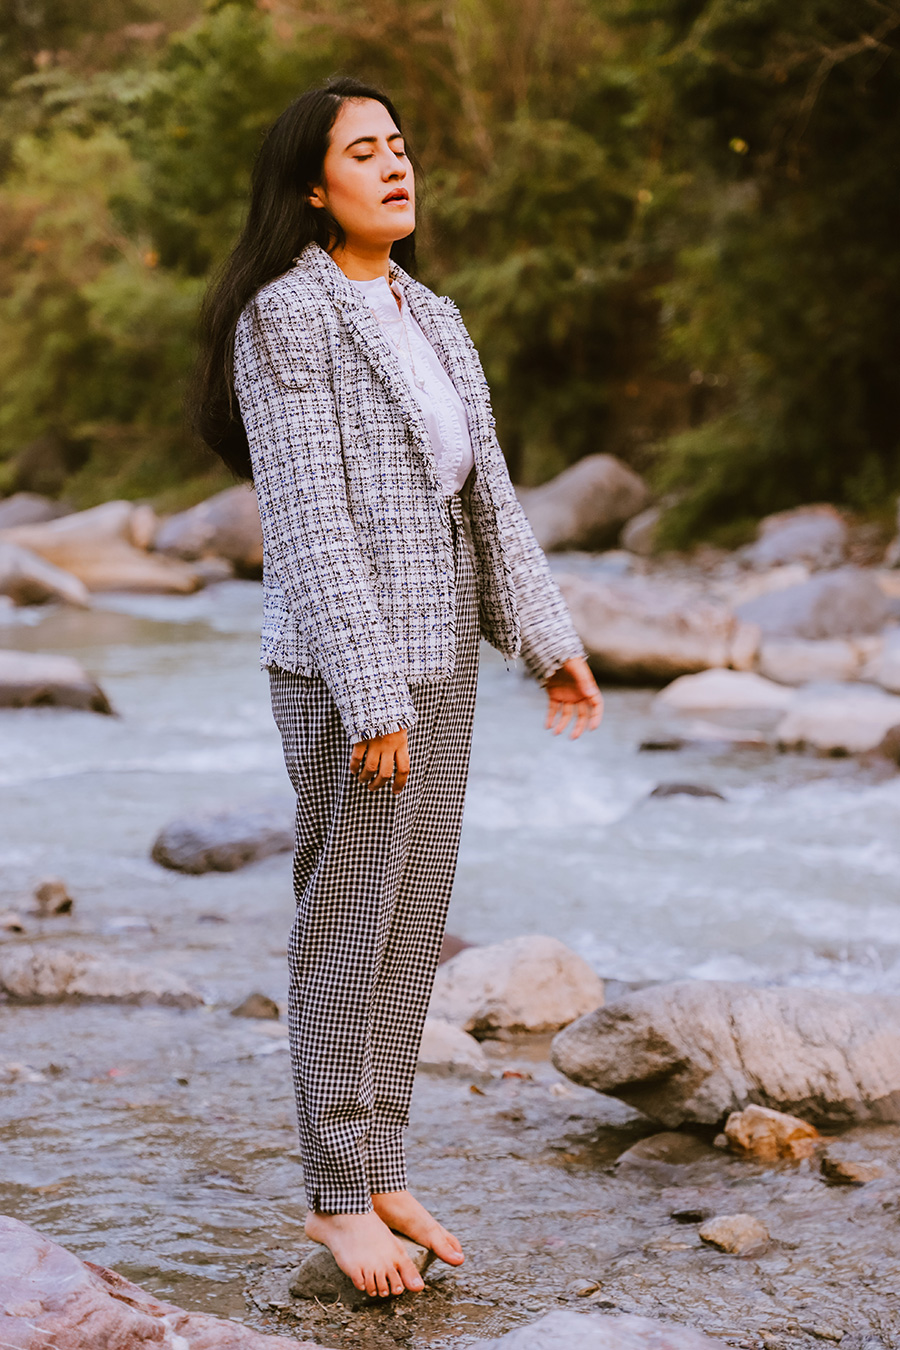 wearing white button up shirt with gingham pant and tweed blazer for work outfit